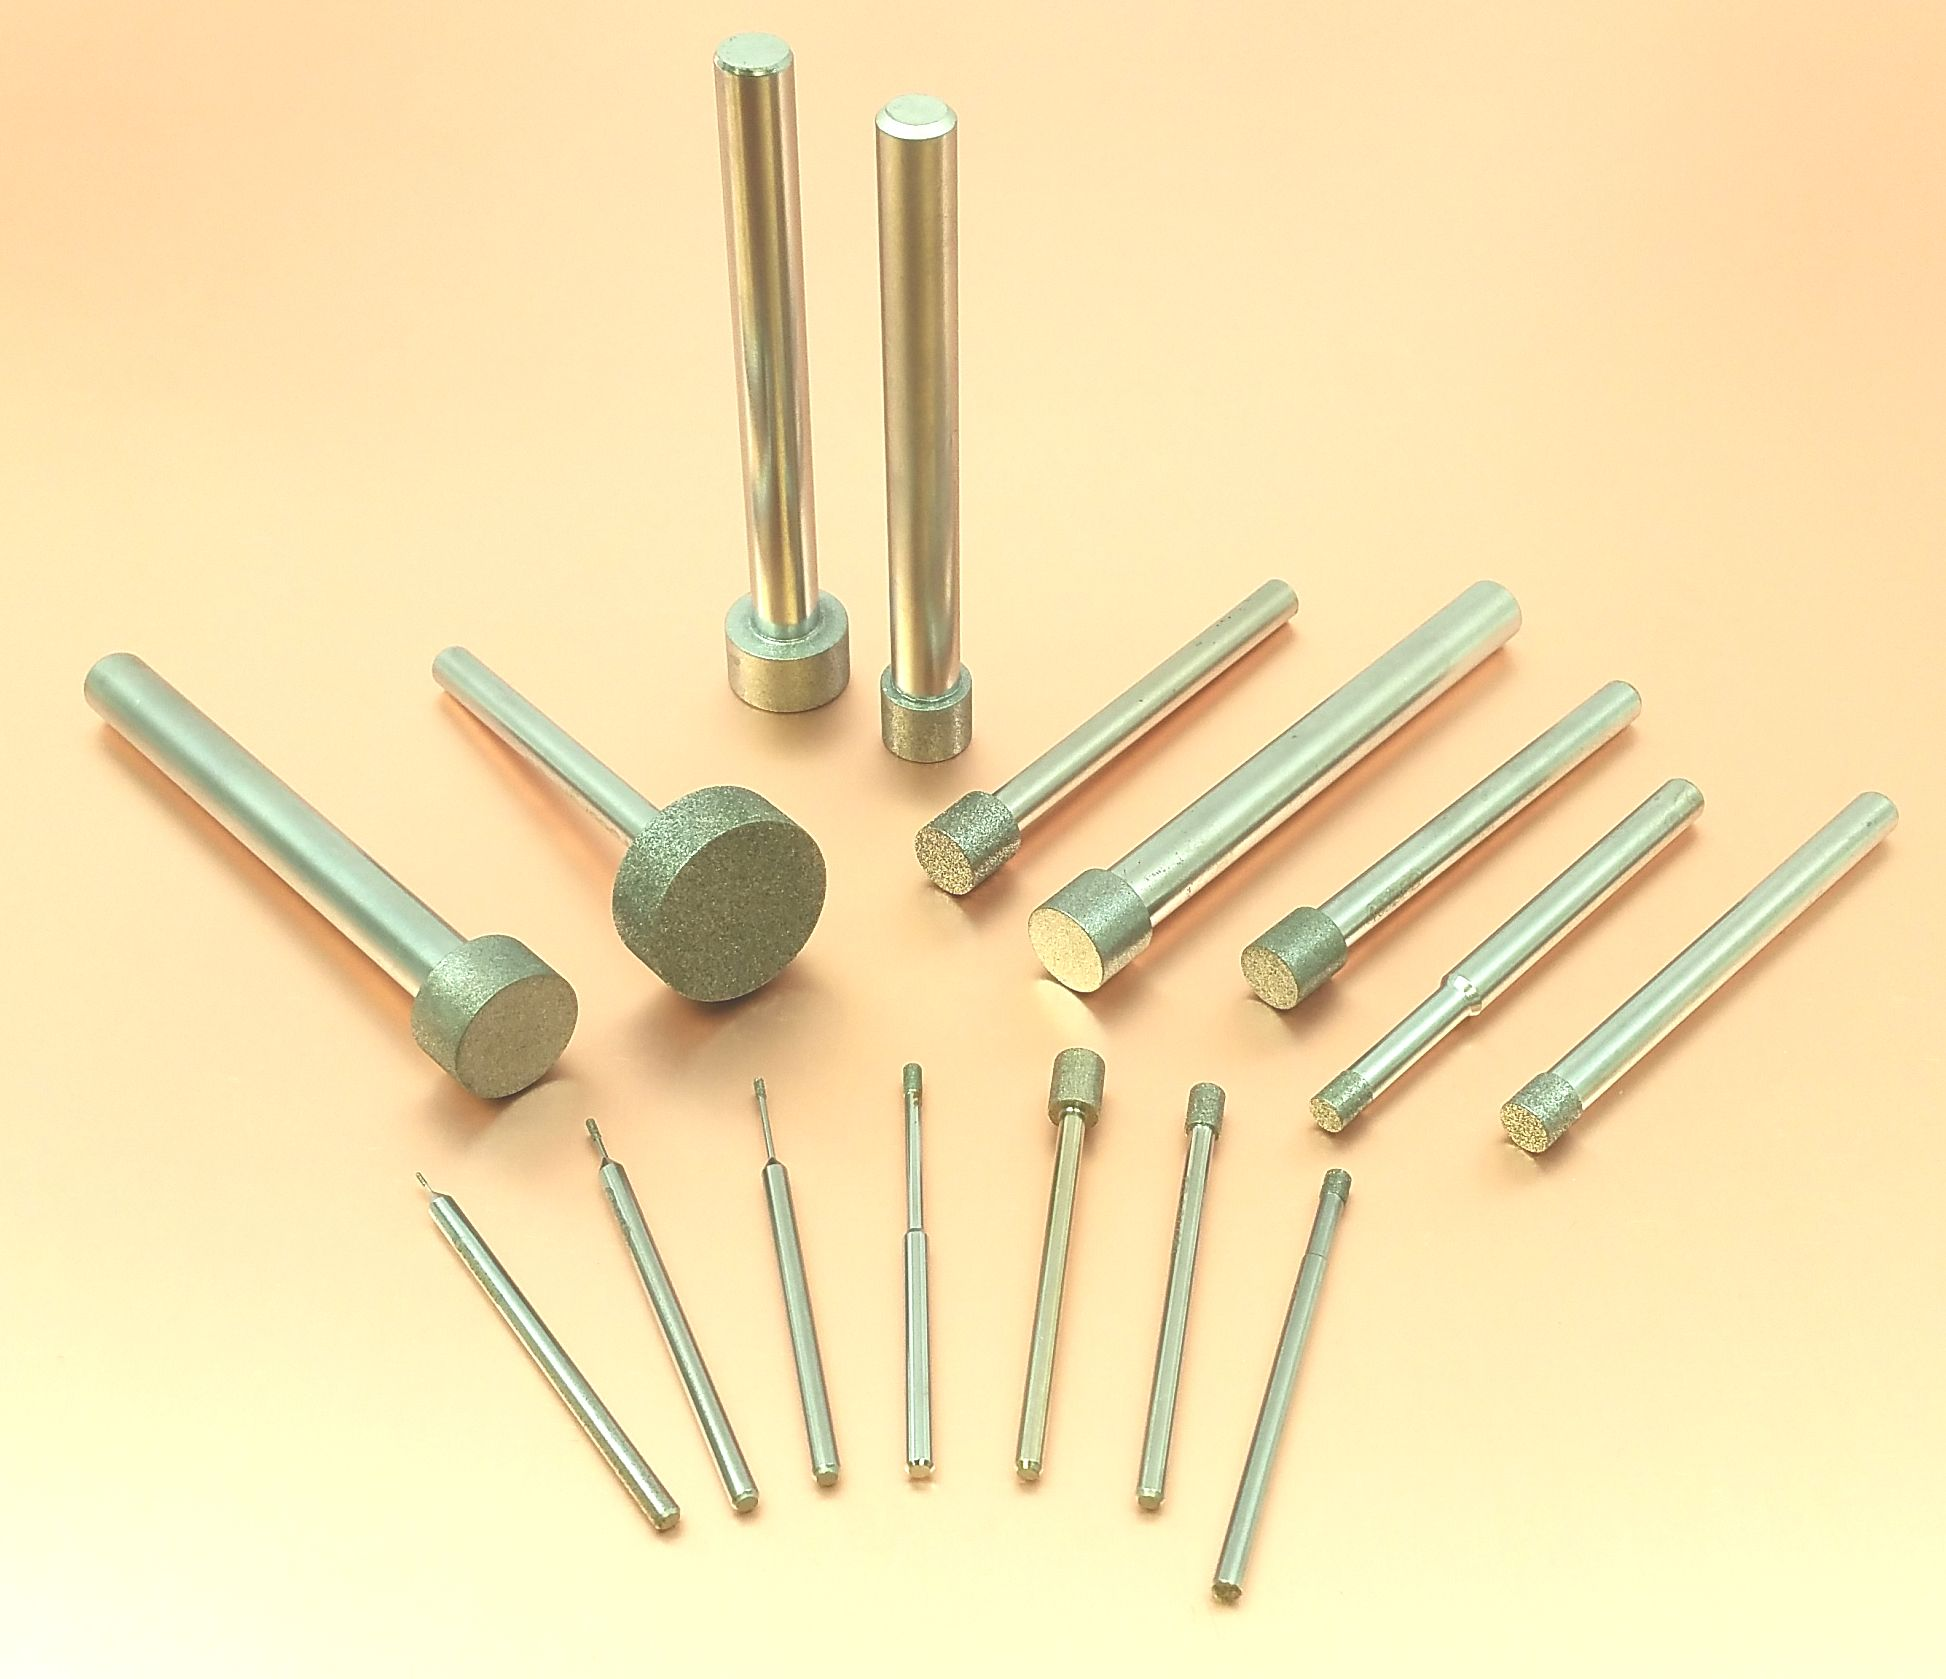 jig-grinding-mandrel-group.jpg